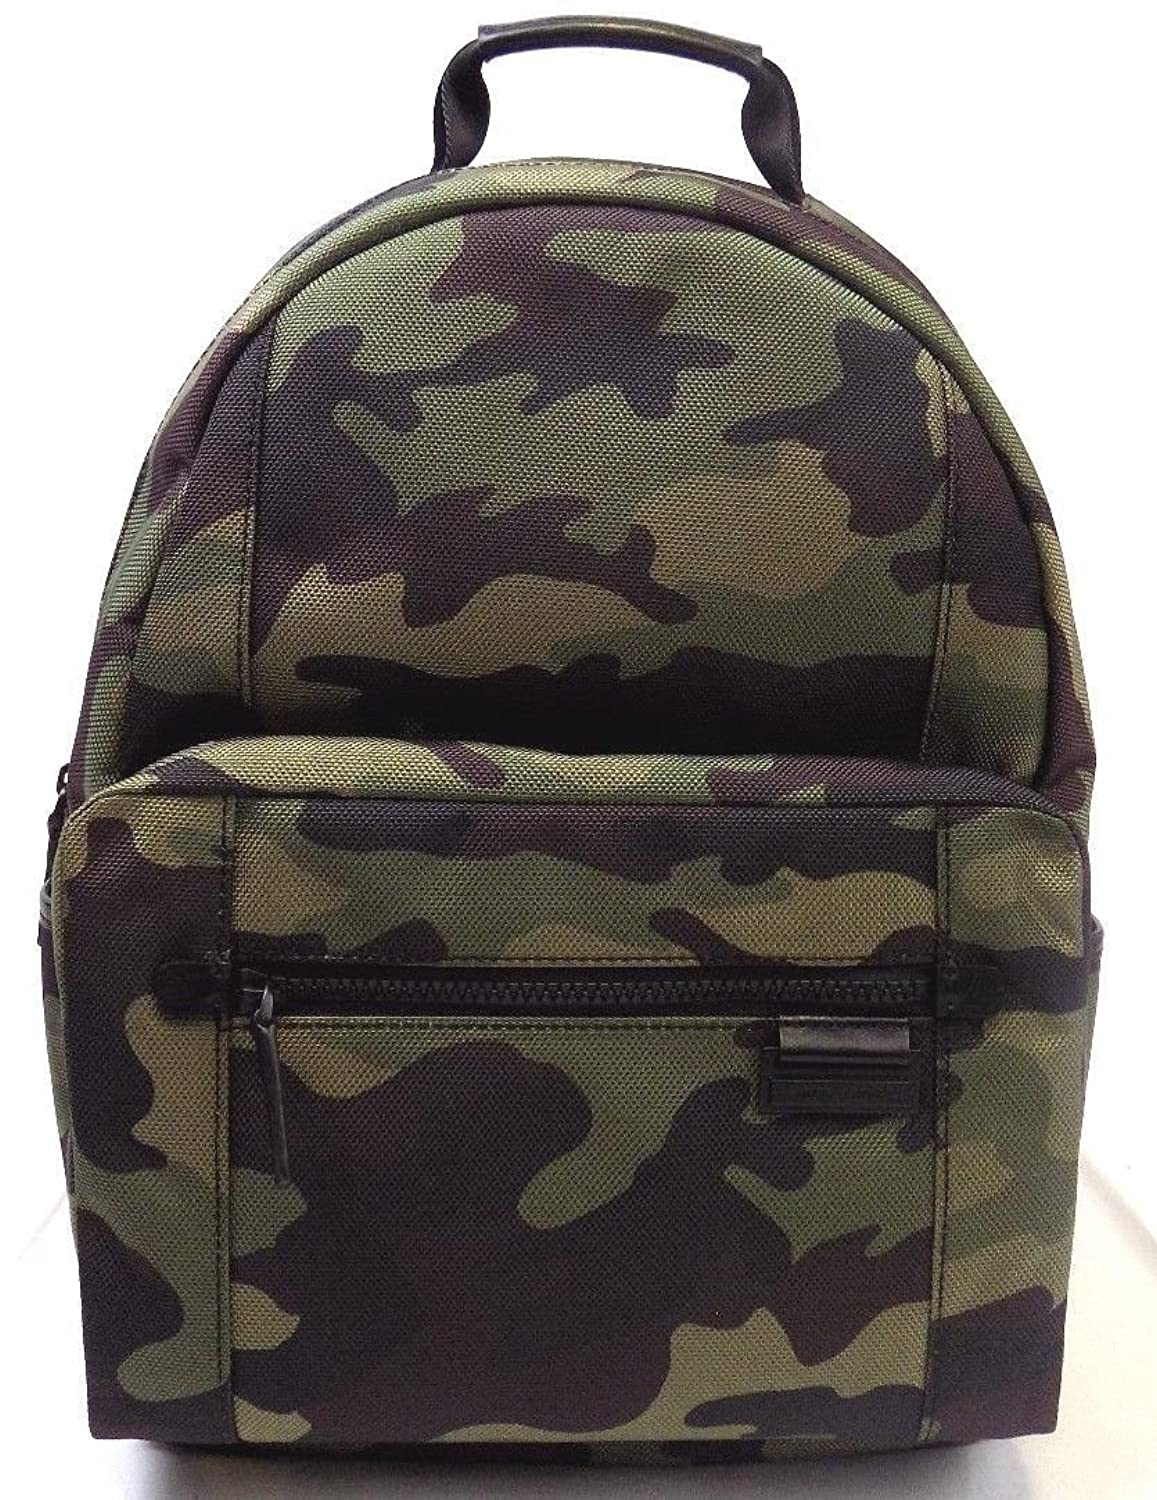 4906410edf97 Michael Kors Mens Travis Camouflage Nylon Backpack